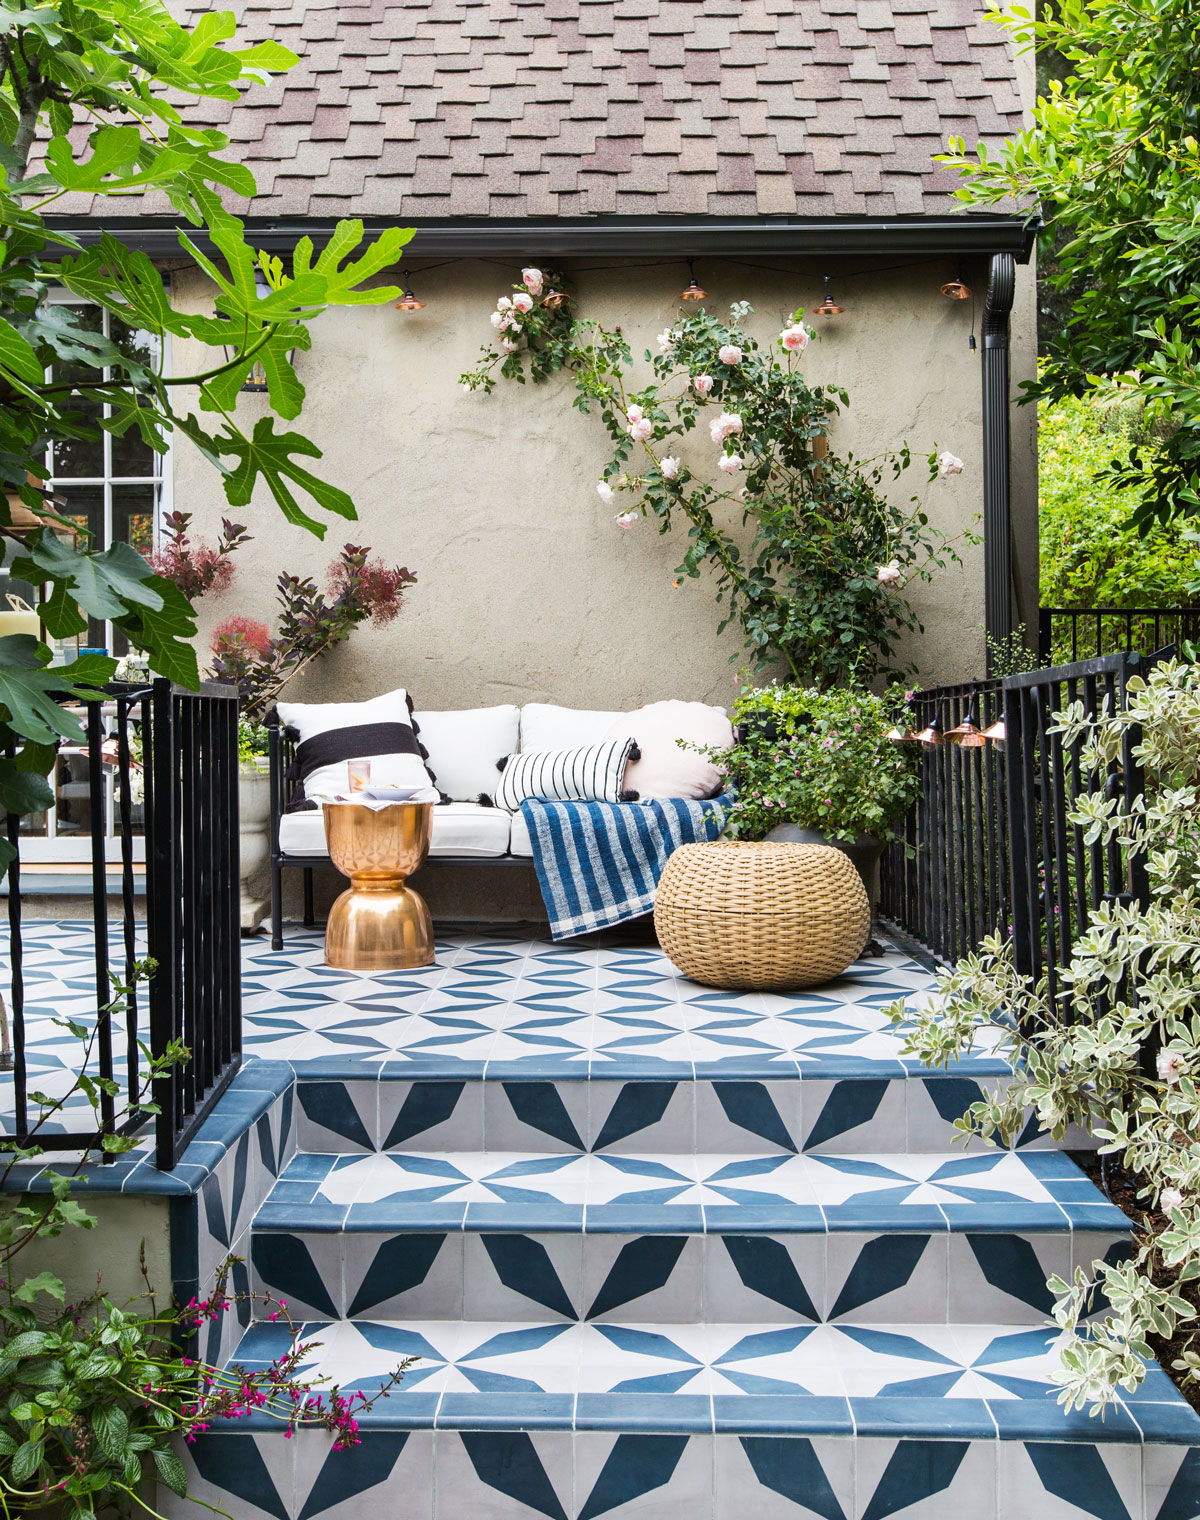 Patio with Barcelona cement tiles